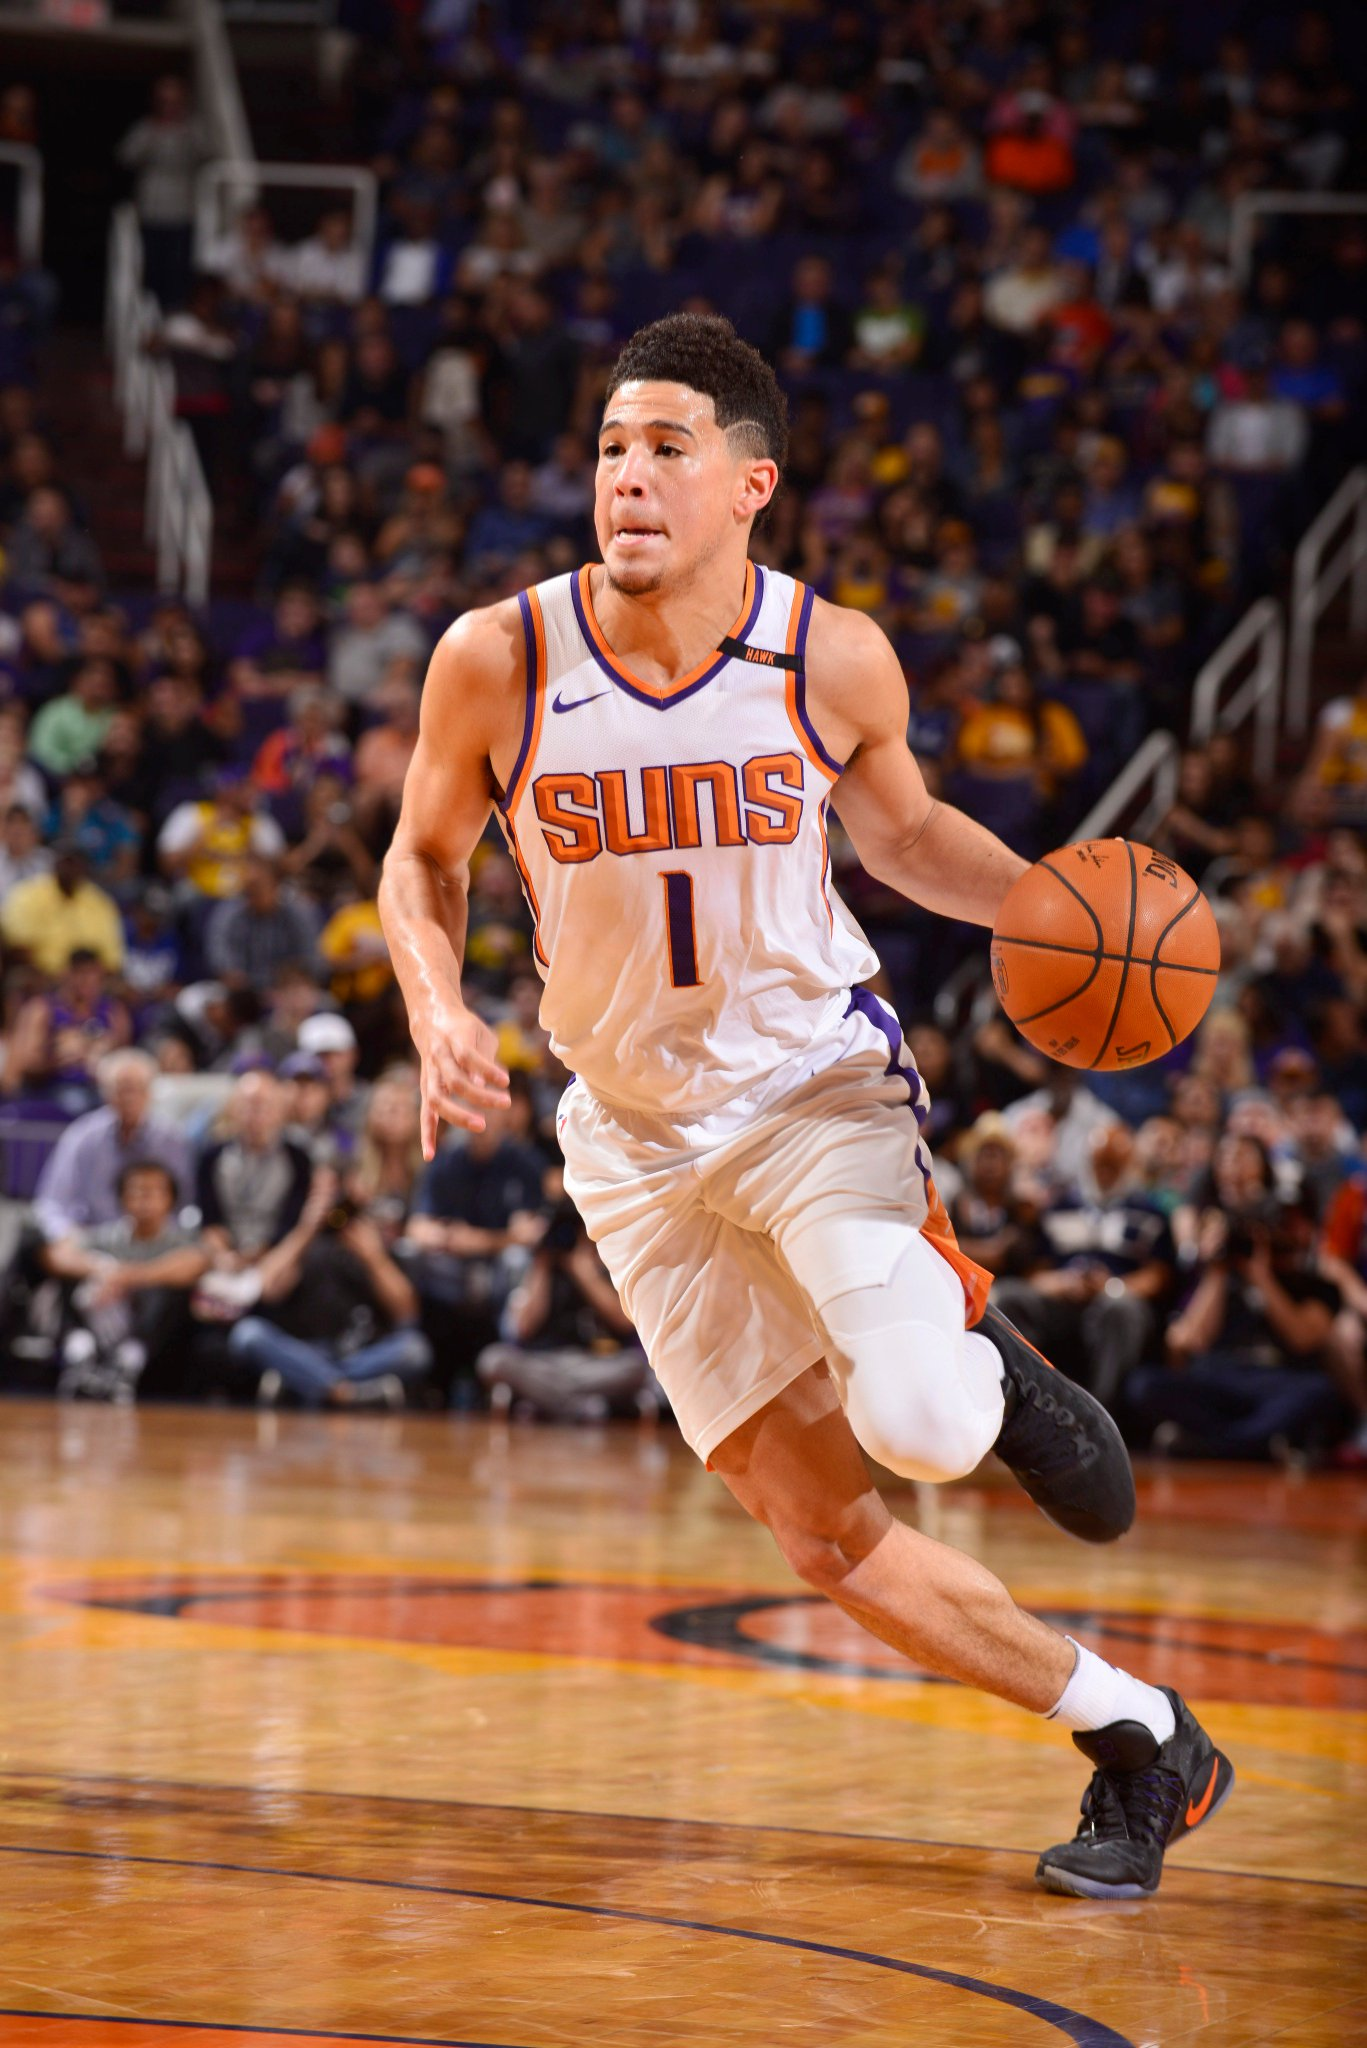 Devin Booker has the hot hand at the half with 22 points.  @Suns hold 44-43 over @Lakers on #NBA League Pass. https://t.co/5jzmsBfxv7